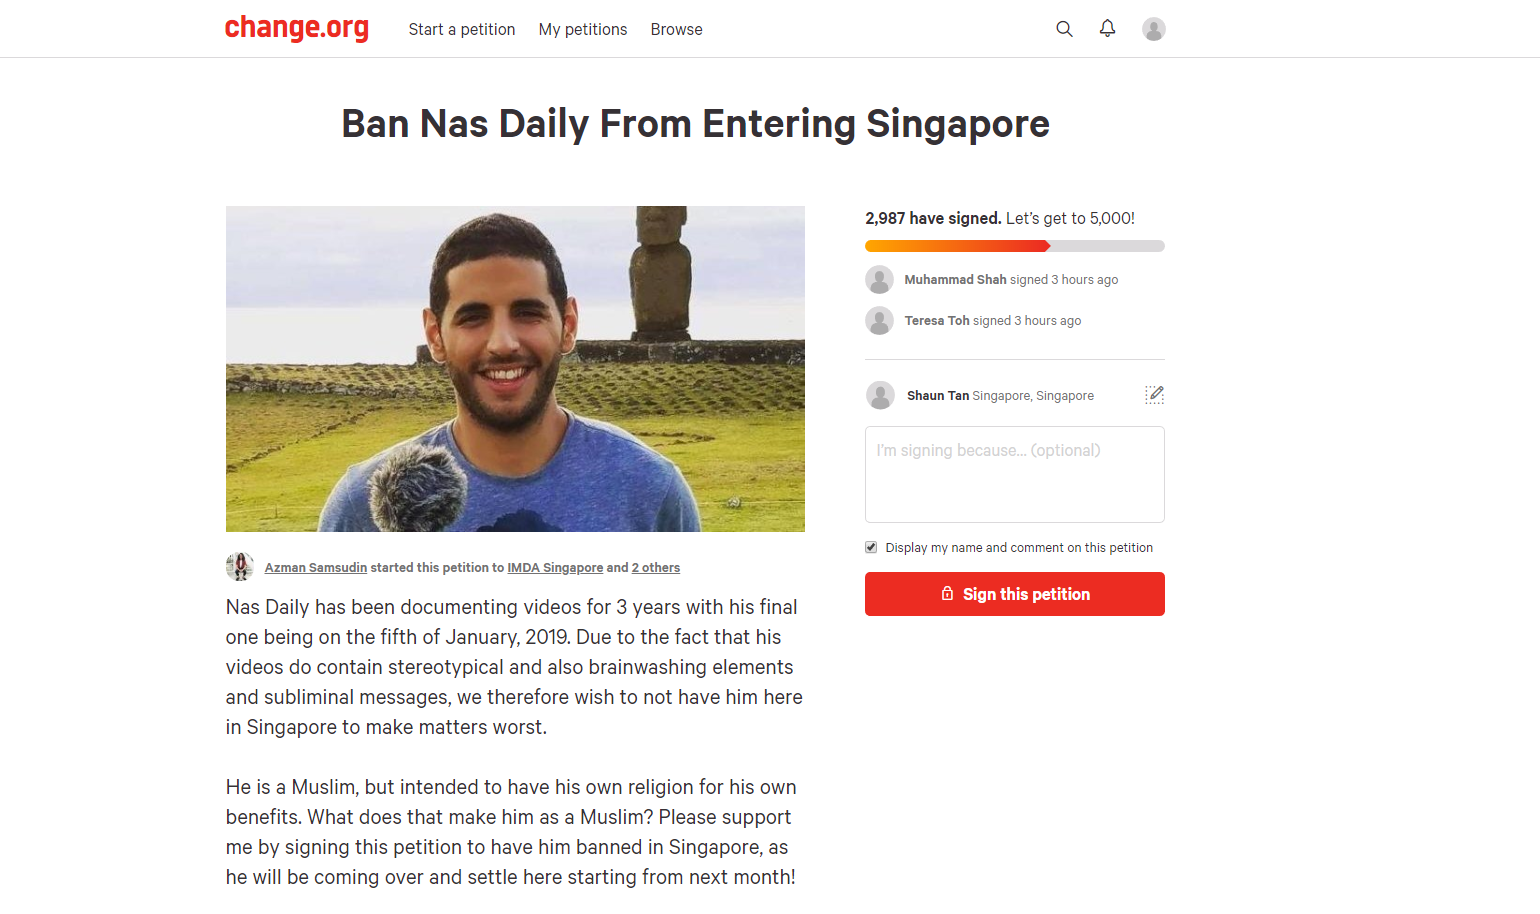 10 Questions with the Guy Who Wants to Ban Nas Daily From Singapore